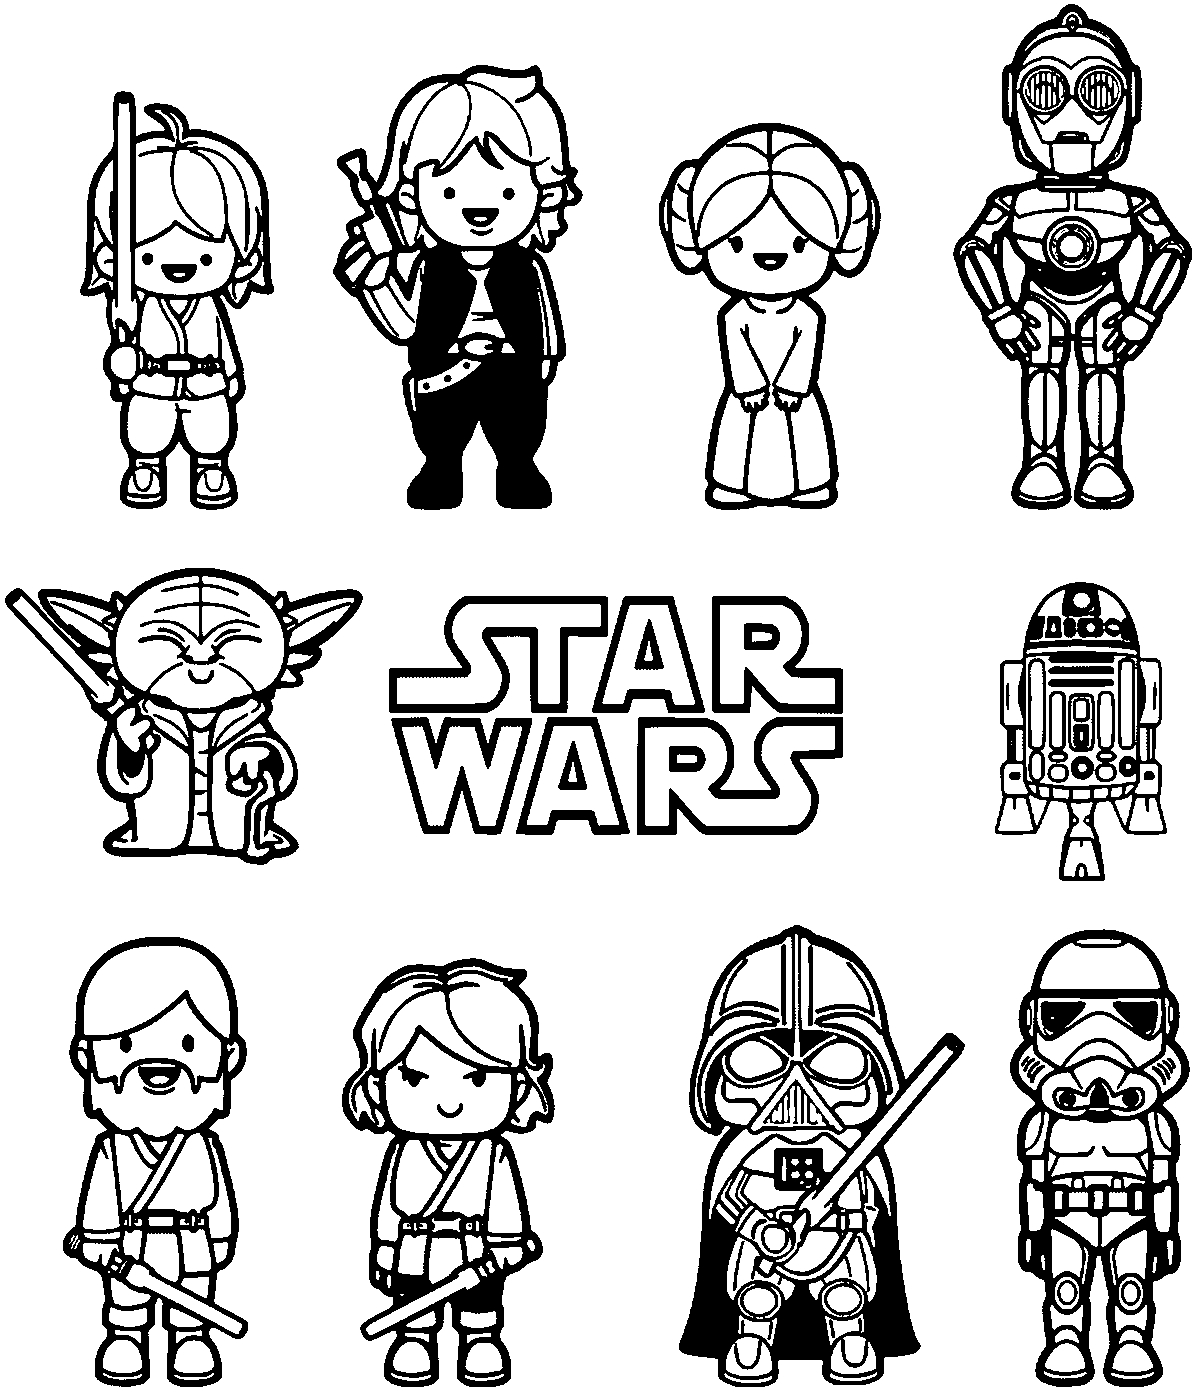 star wars characters coloring pages free printable star wars coloring pages free printable coloring characters wars star pages